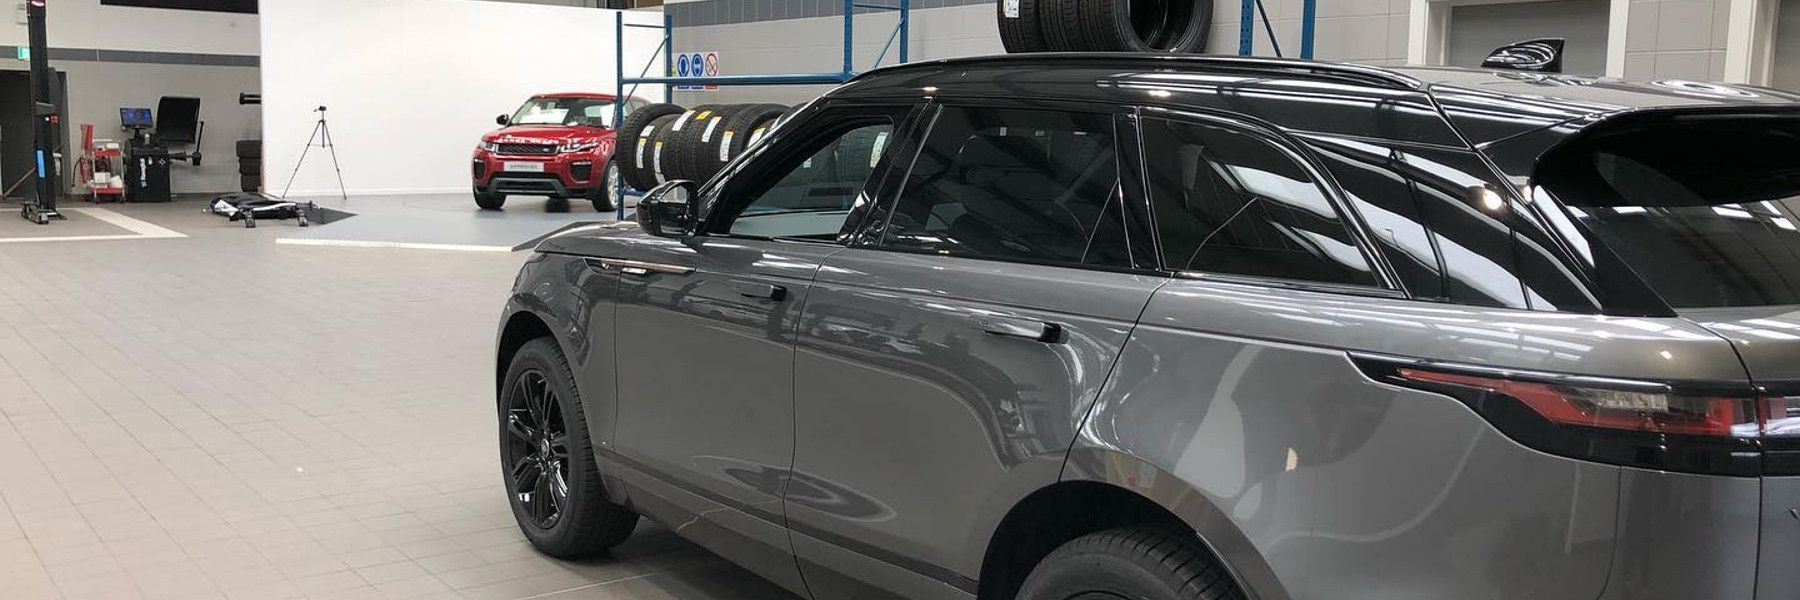 How To Find Service Of Car Window Tinting Near Me? (With